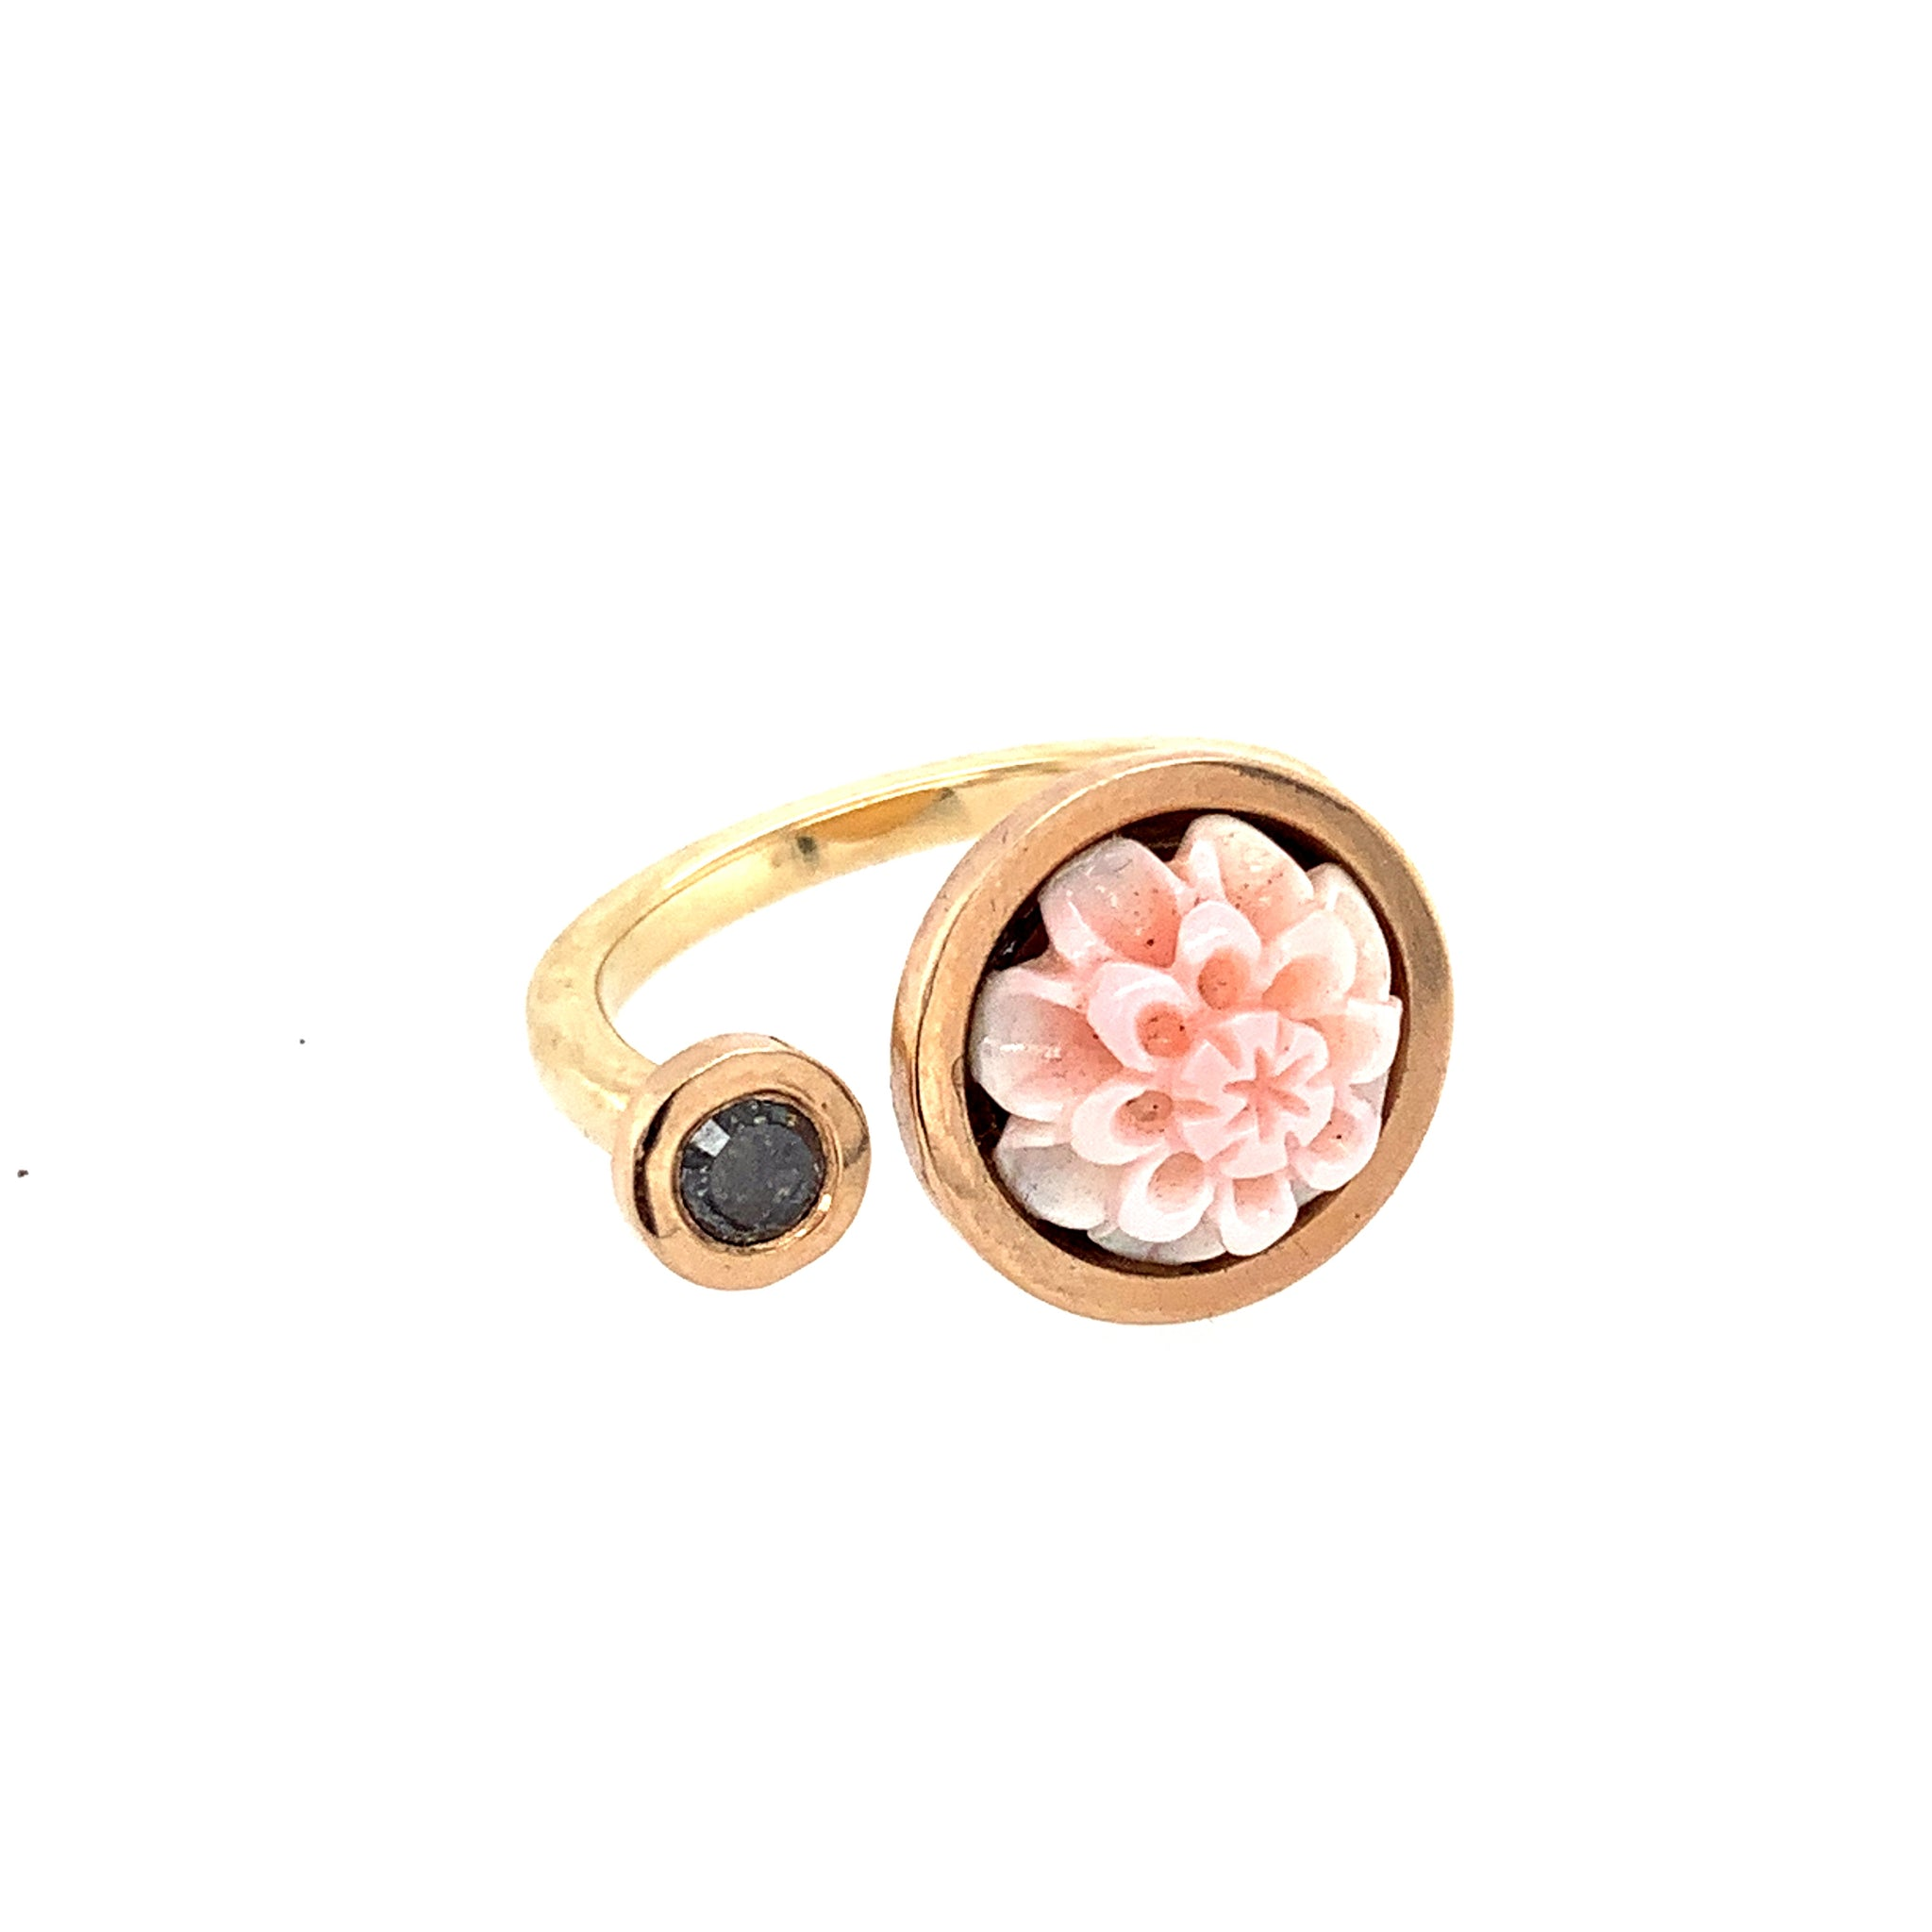 Ring Roségold 585 Congemuschel Diamantrose 0.14 ct - R66